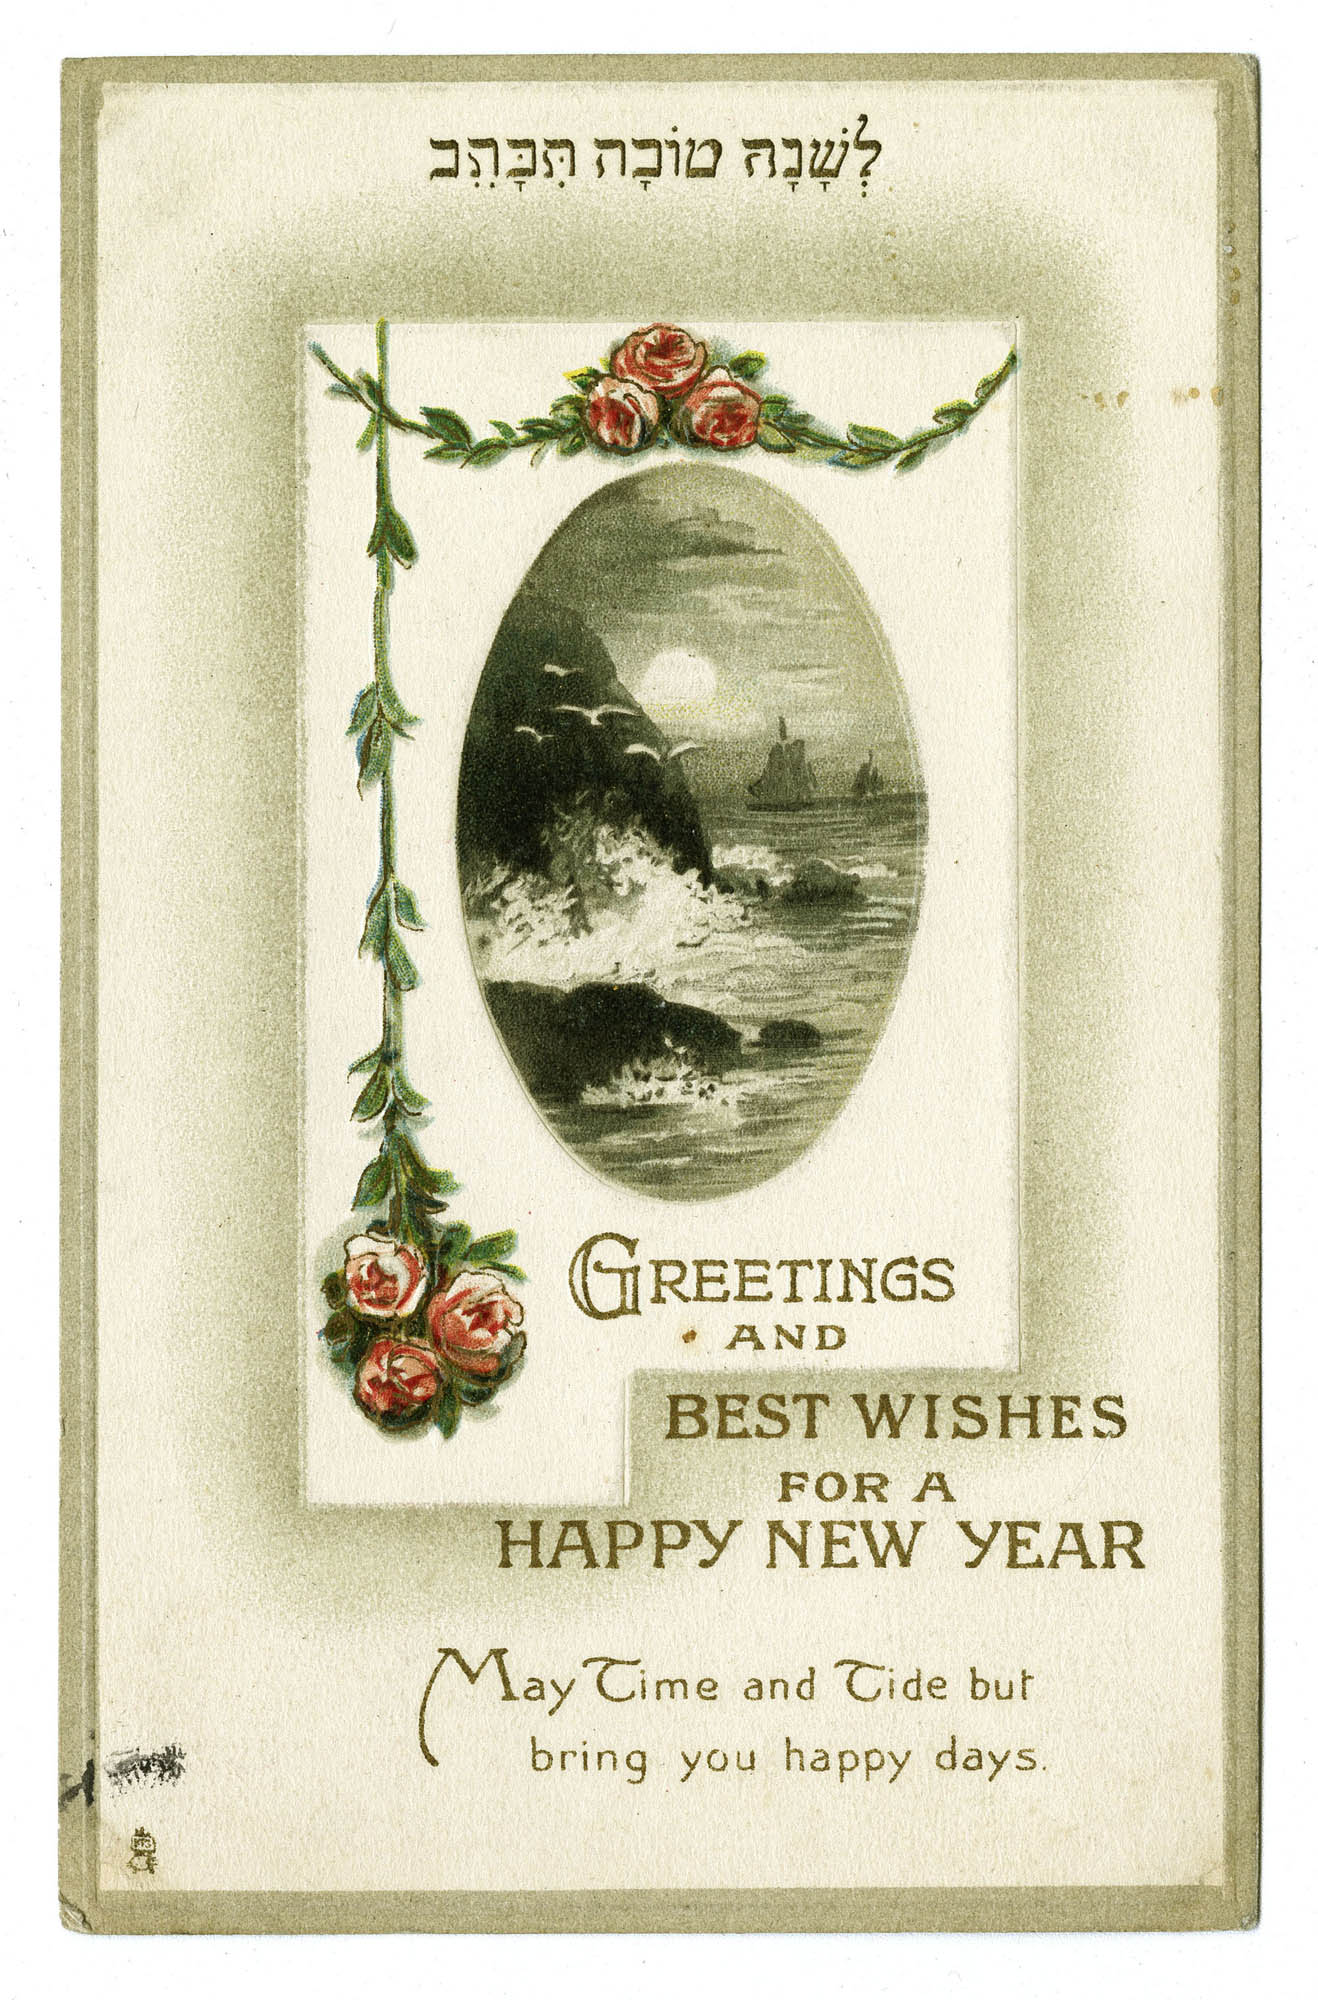 Greetings and Best Wishes for a Happy New Year / לשנה טובה תכתב